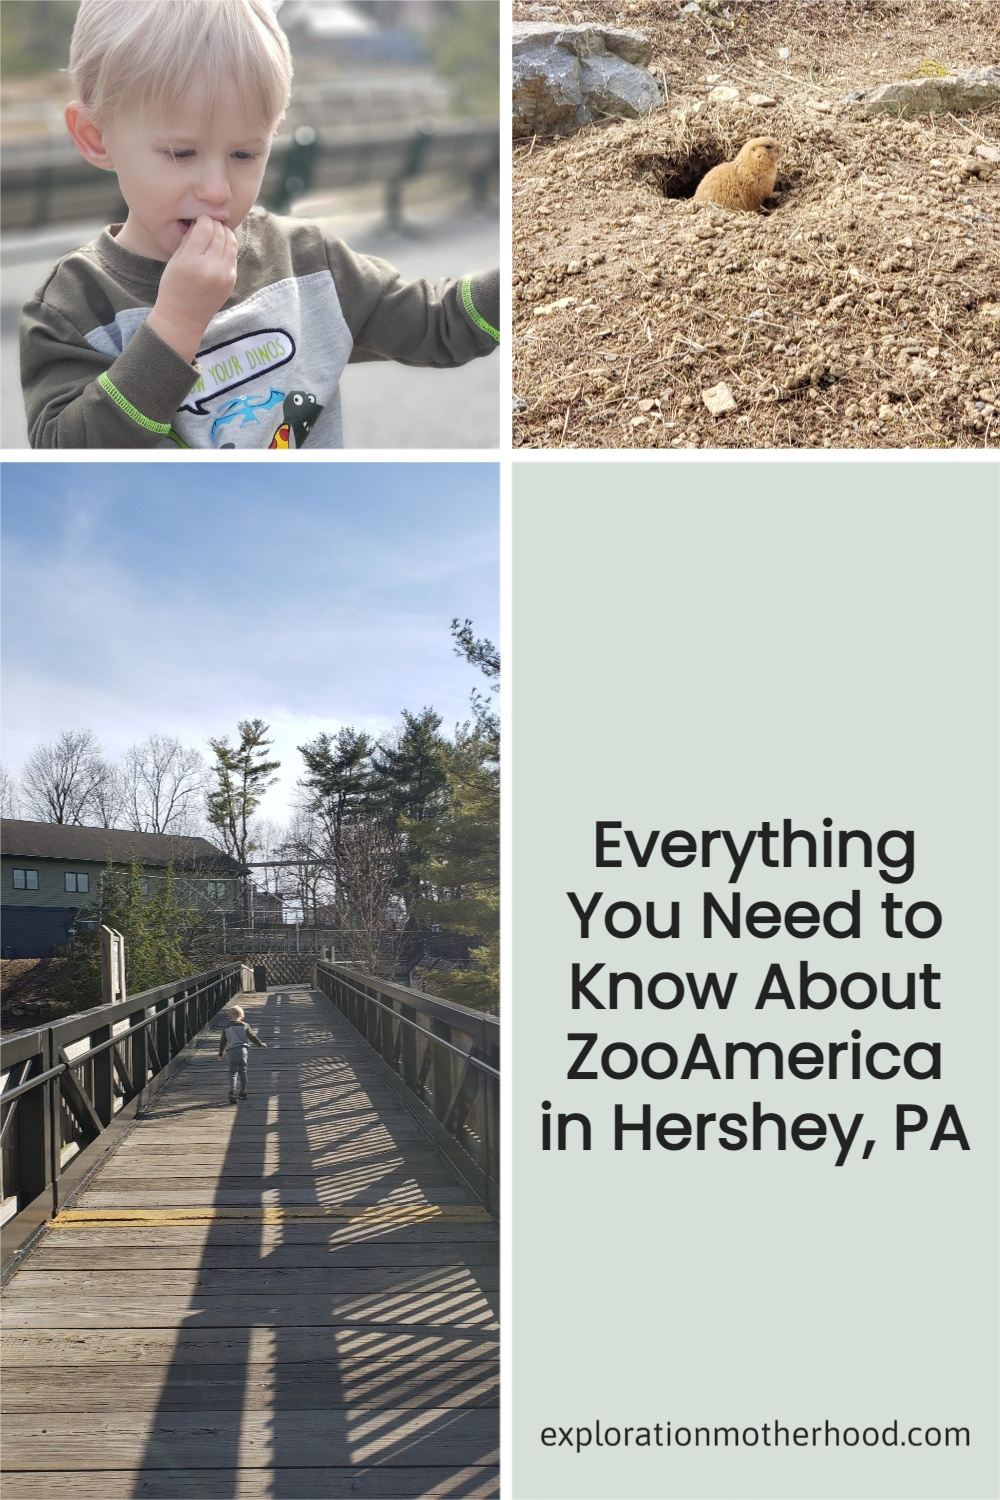 Hershey Zoo Review for Moms - ZooAmerica in Hershey, PA